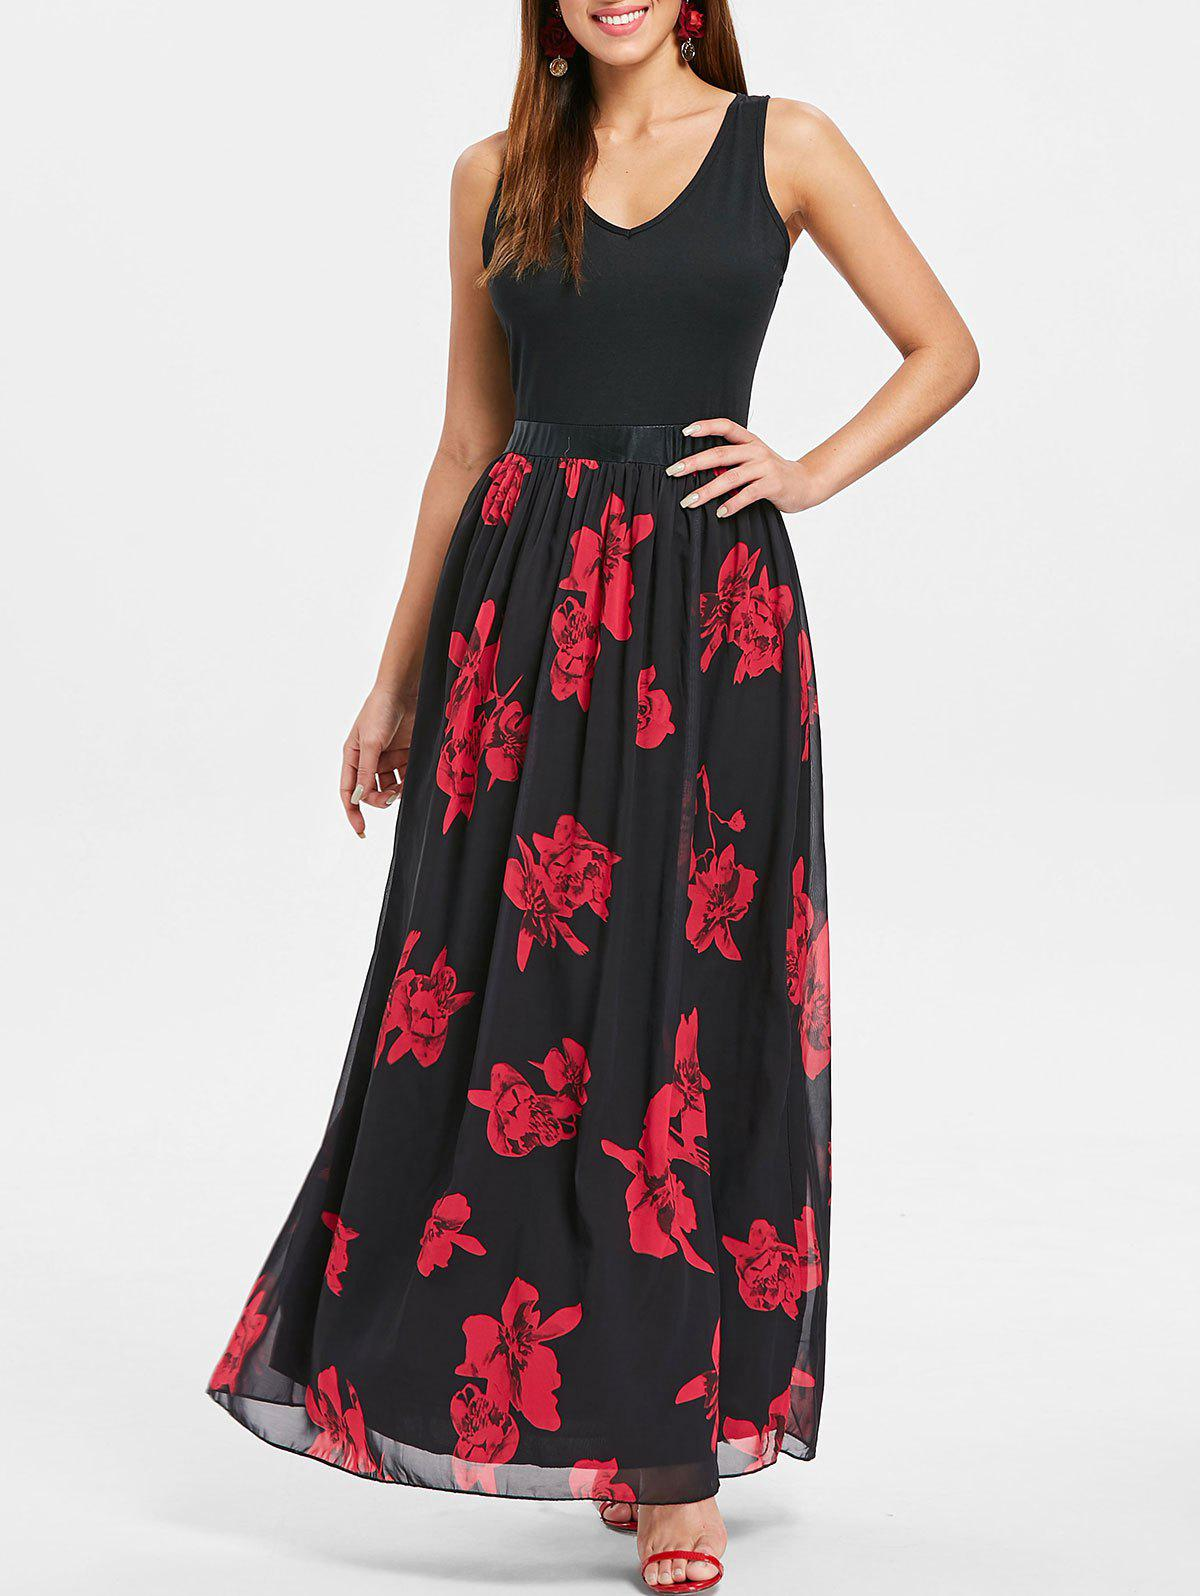 Sleeveless Floral Print Maxi Dress - BLACK L